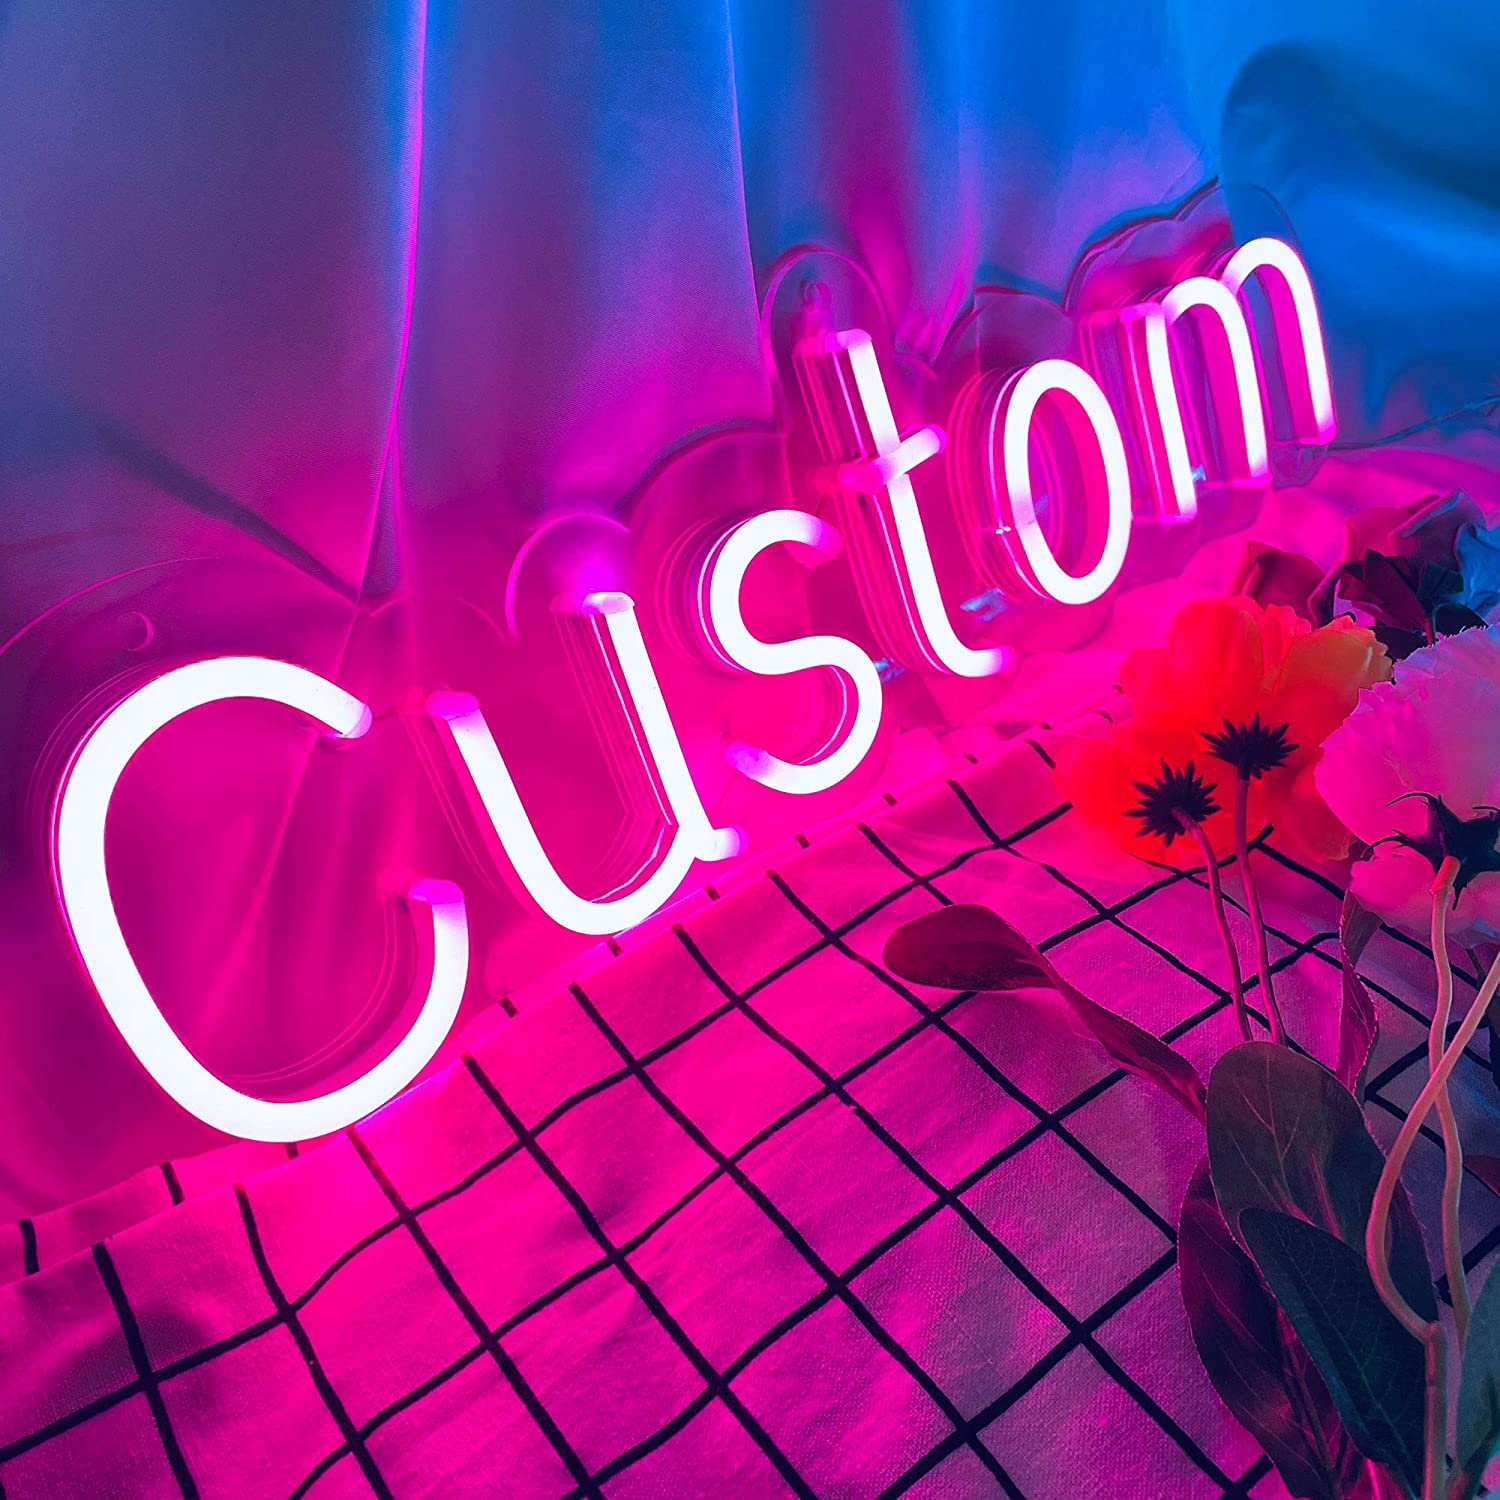 """SELICOR Personalized Neon Signs Led Neon Signs Light for Bedroom Wedding  Birthday Party Home Décor Custom Neon Sign Bar Store Logo Neon Sign (1 Line  Text, Max 16"""") - - Amazon.com"""